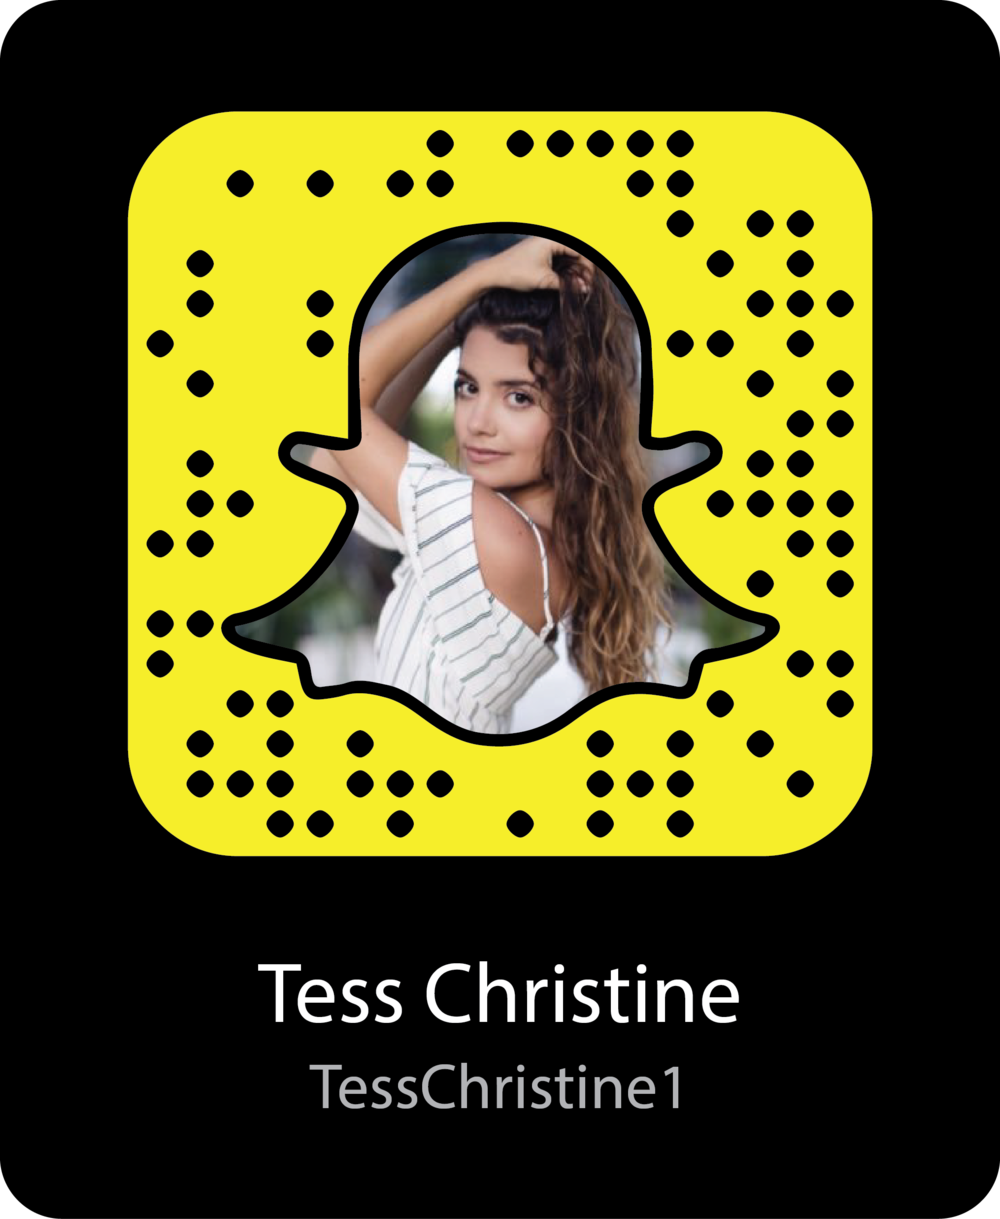 TessChristine1-Beauty-Bloggers-snapchat-snapcode.png